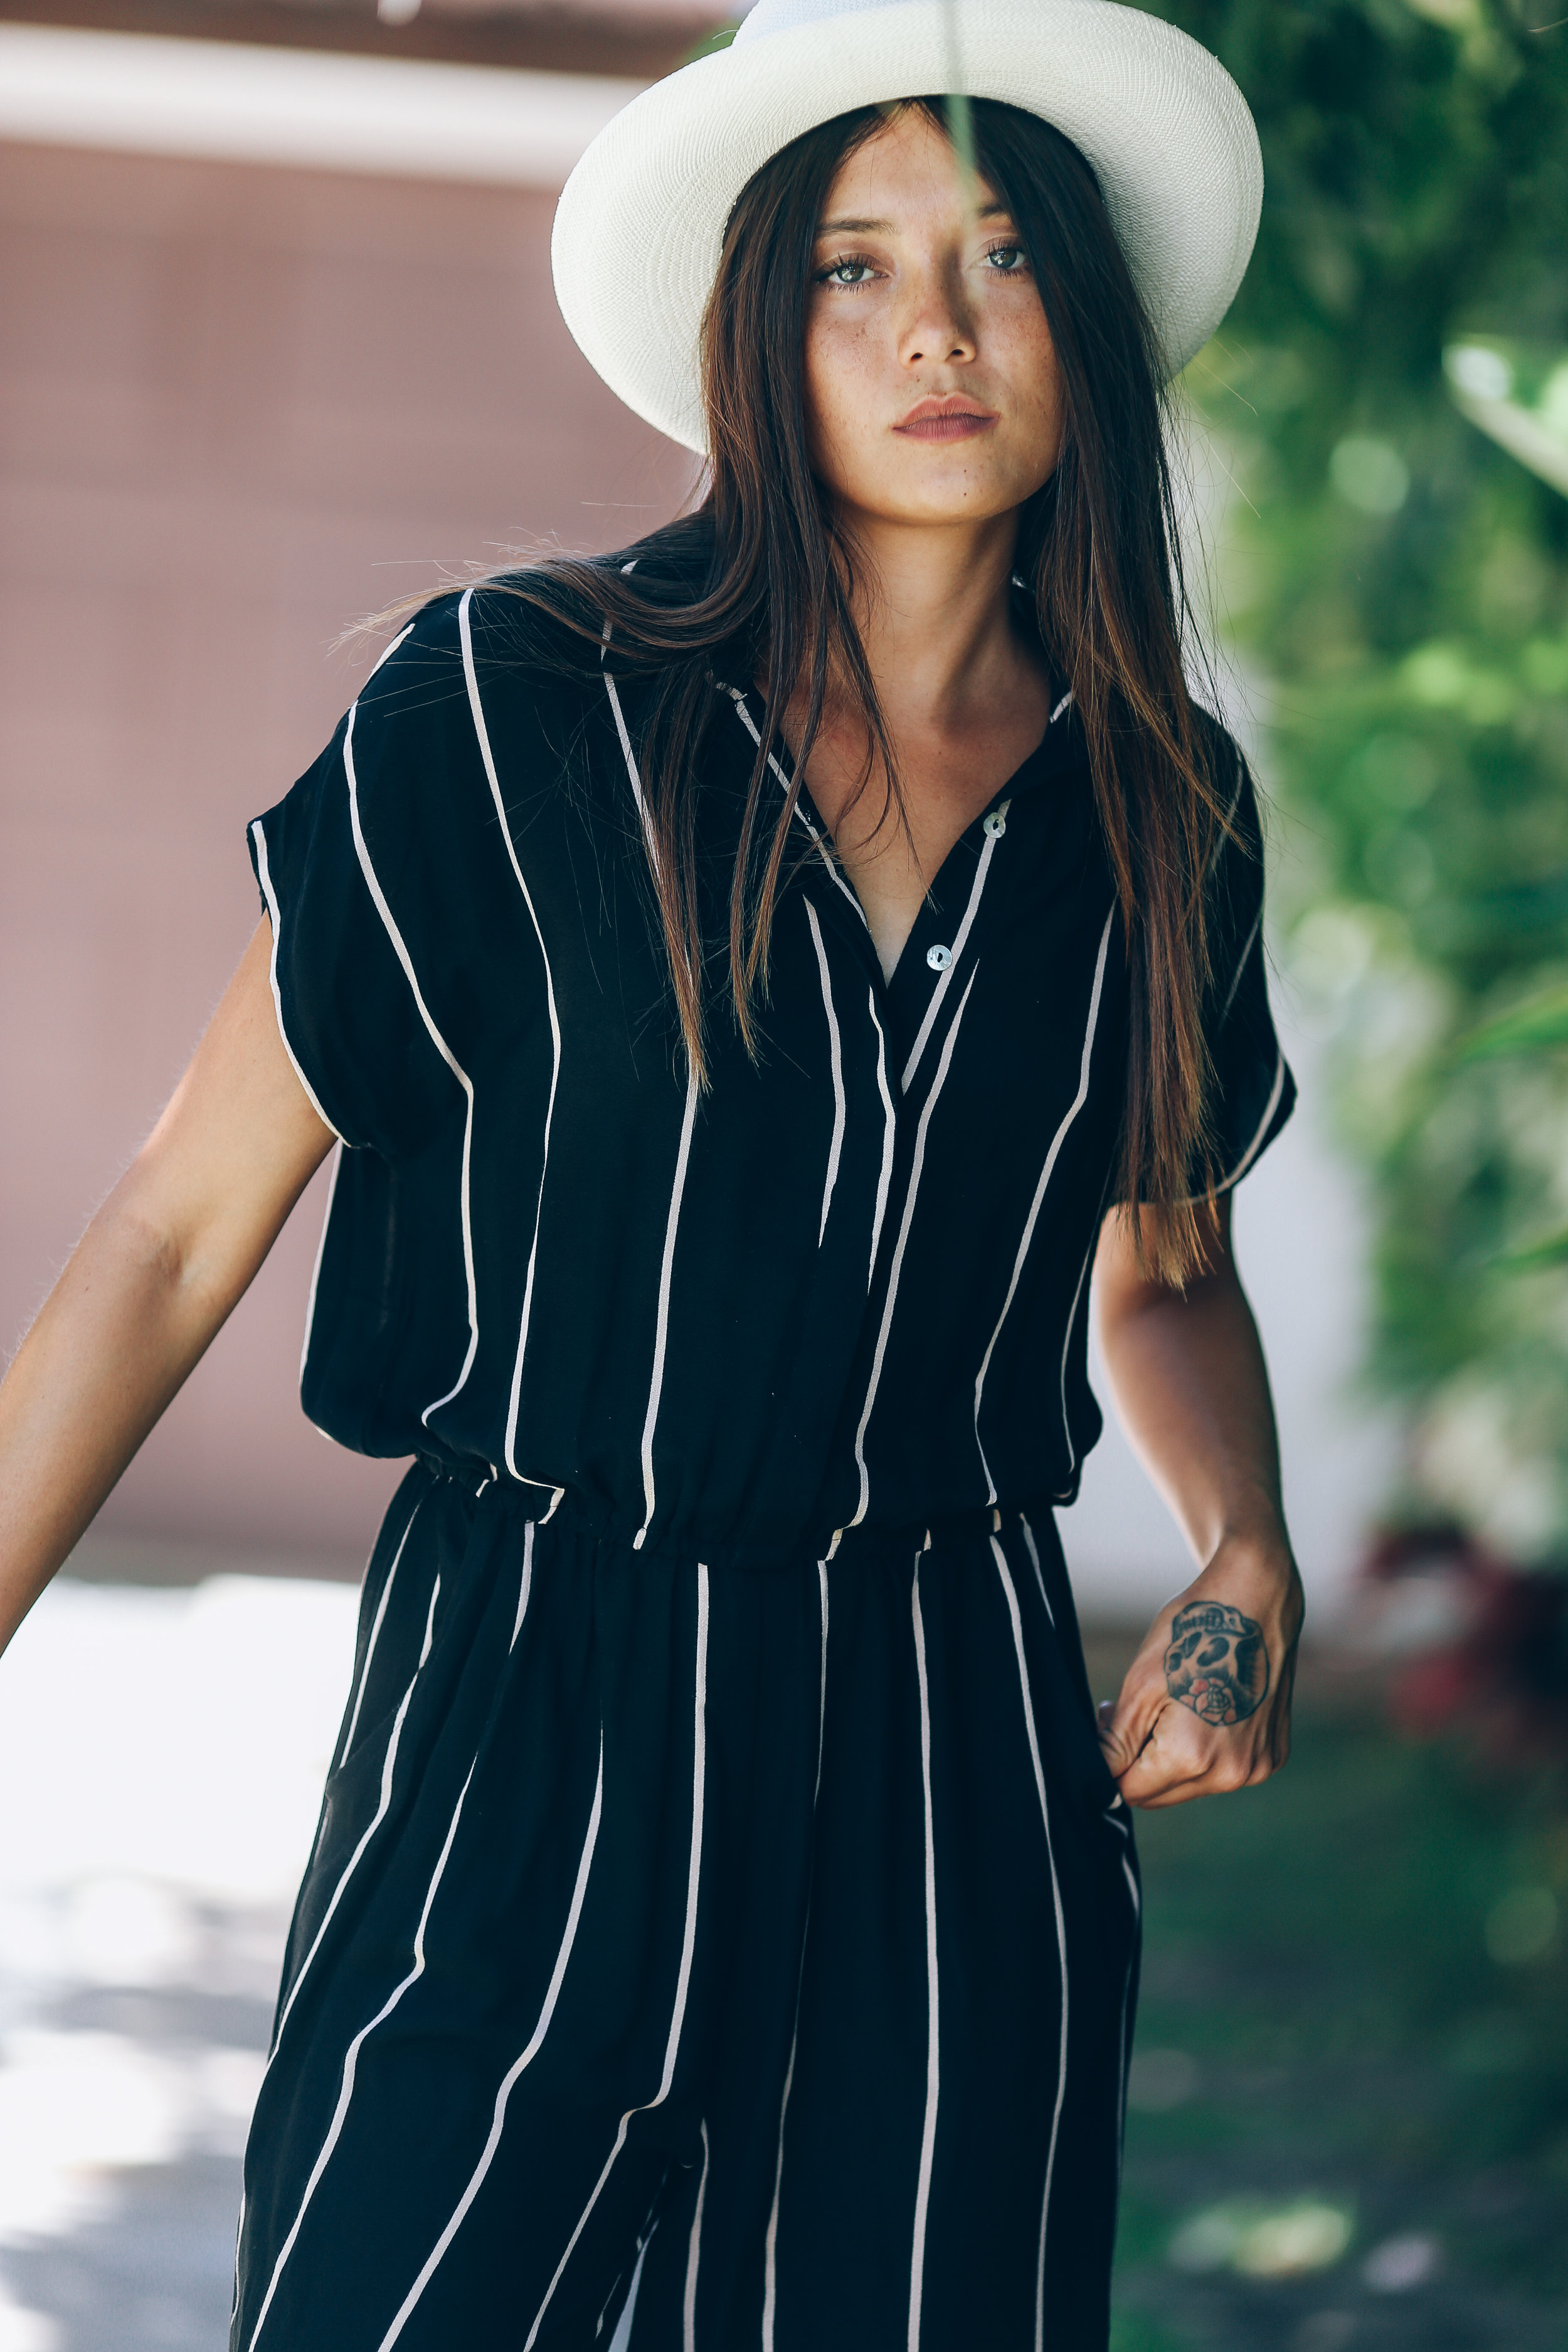 NORI STRIPE - The print speaks for itself - but come on, we all have a dying love for Nori.